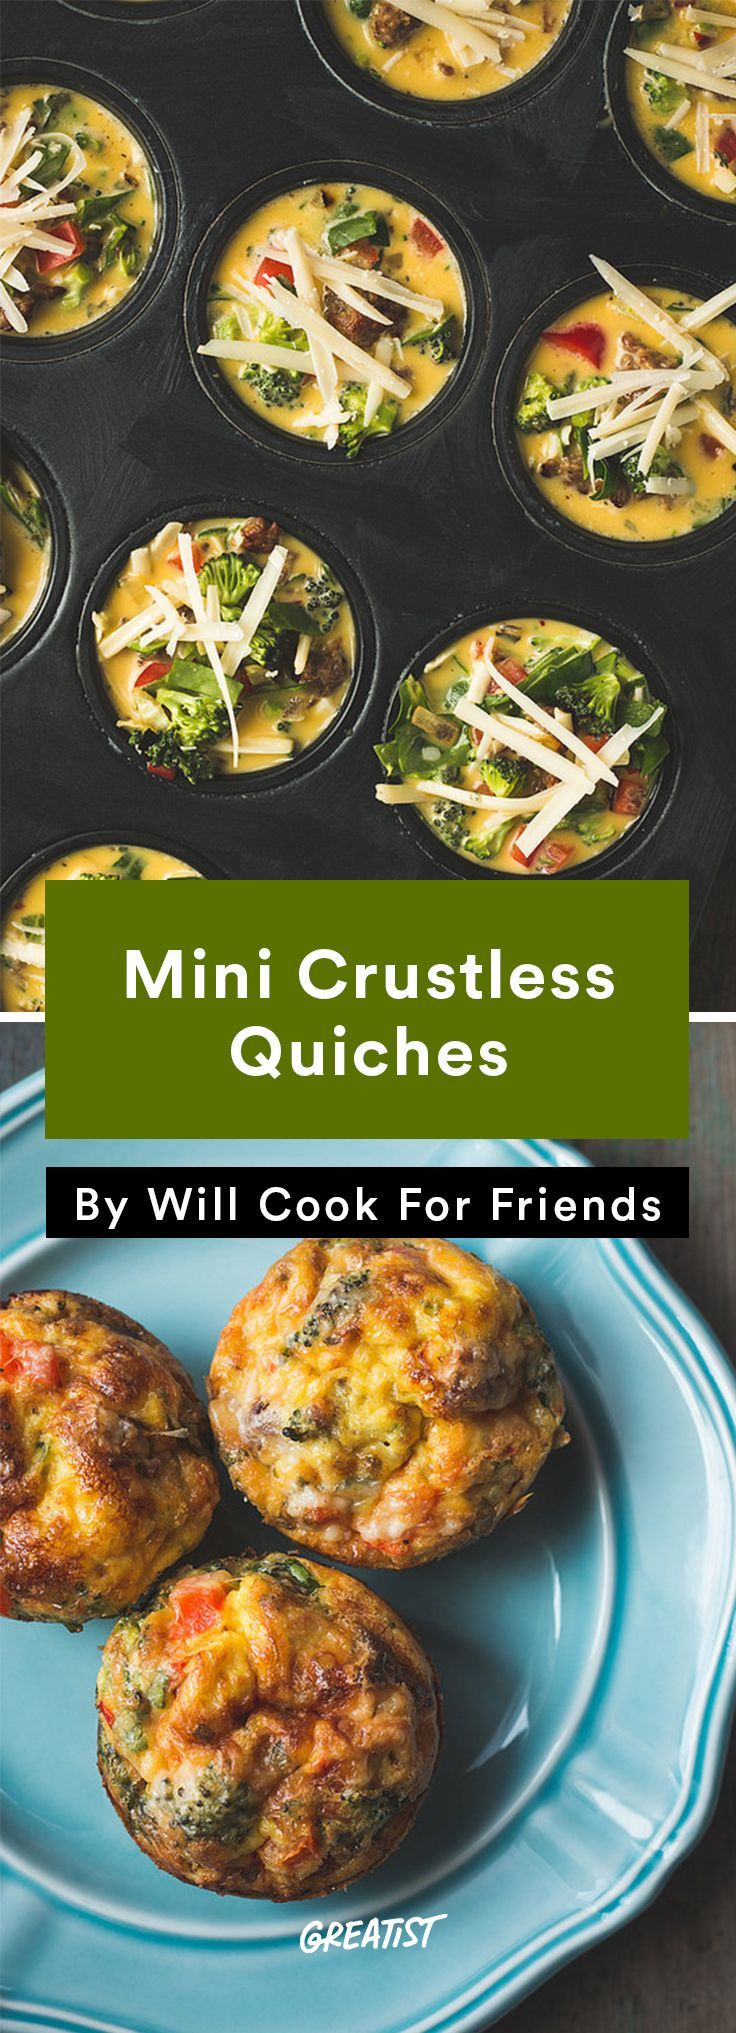 3. Mini Crustless Quiches #greatist http://greatist.com/eat/crustless-quiche-recipes